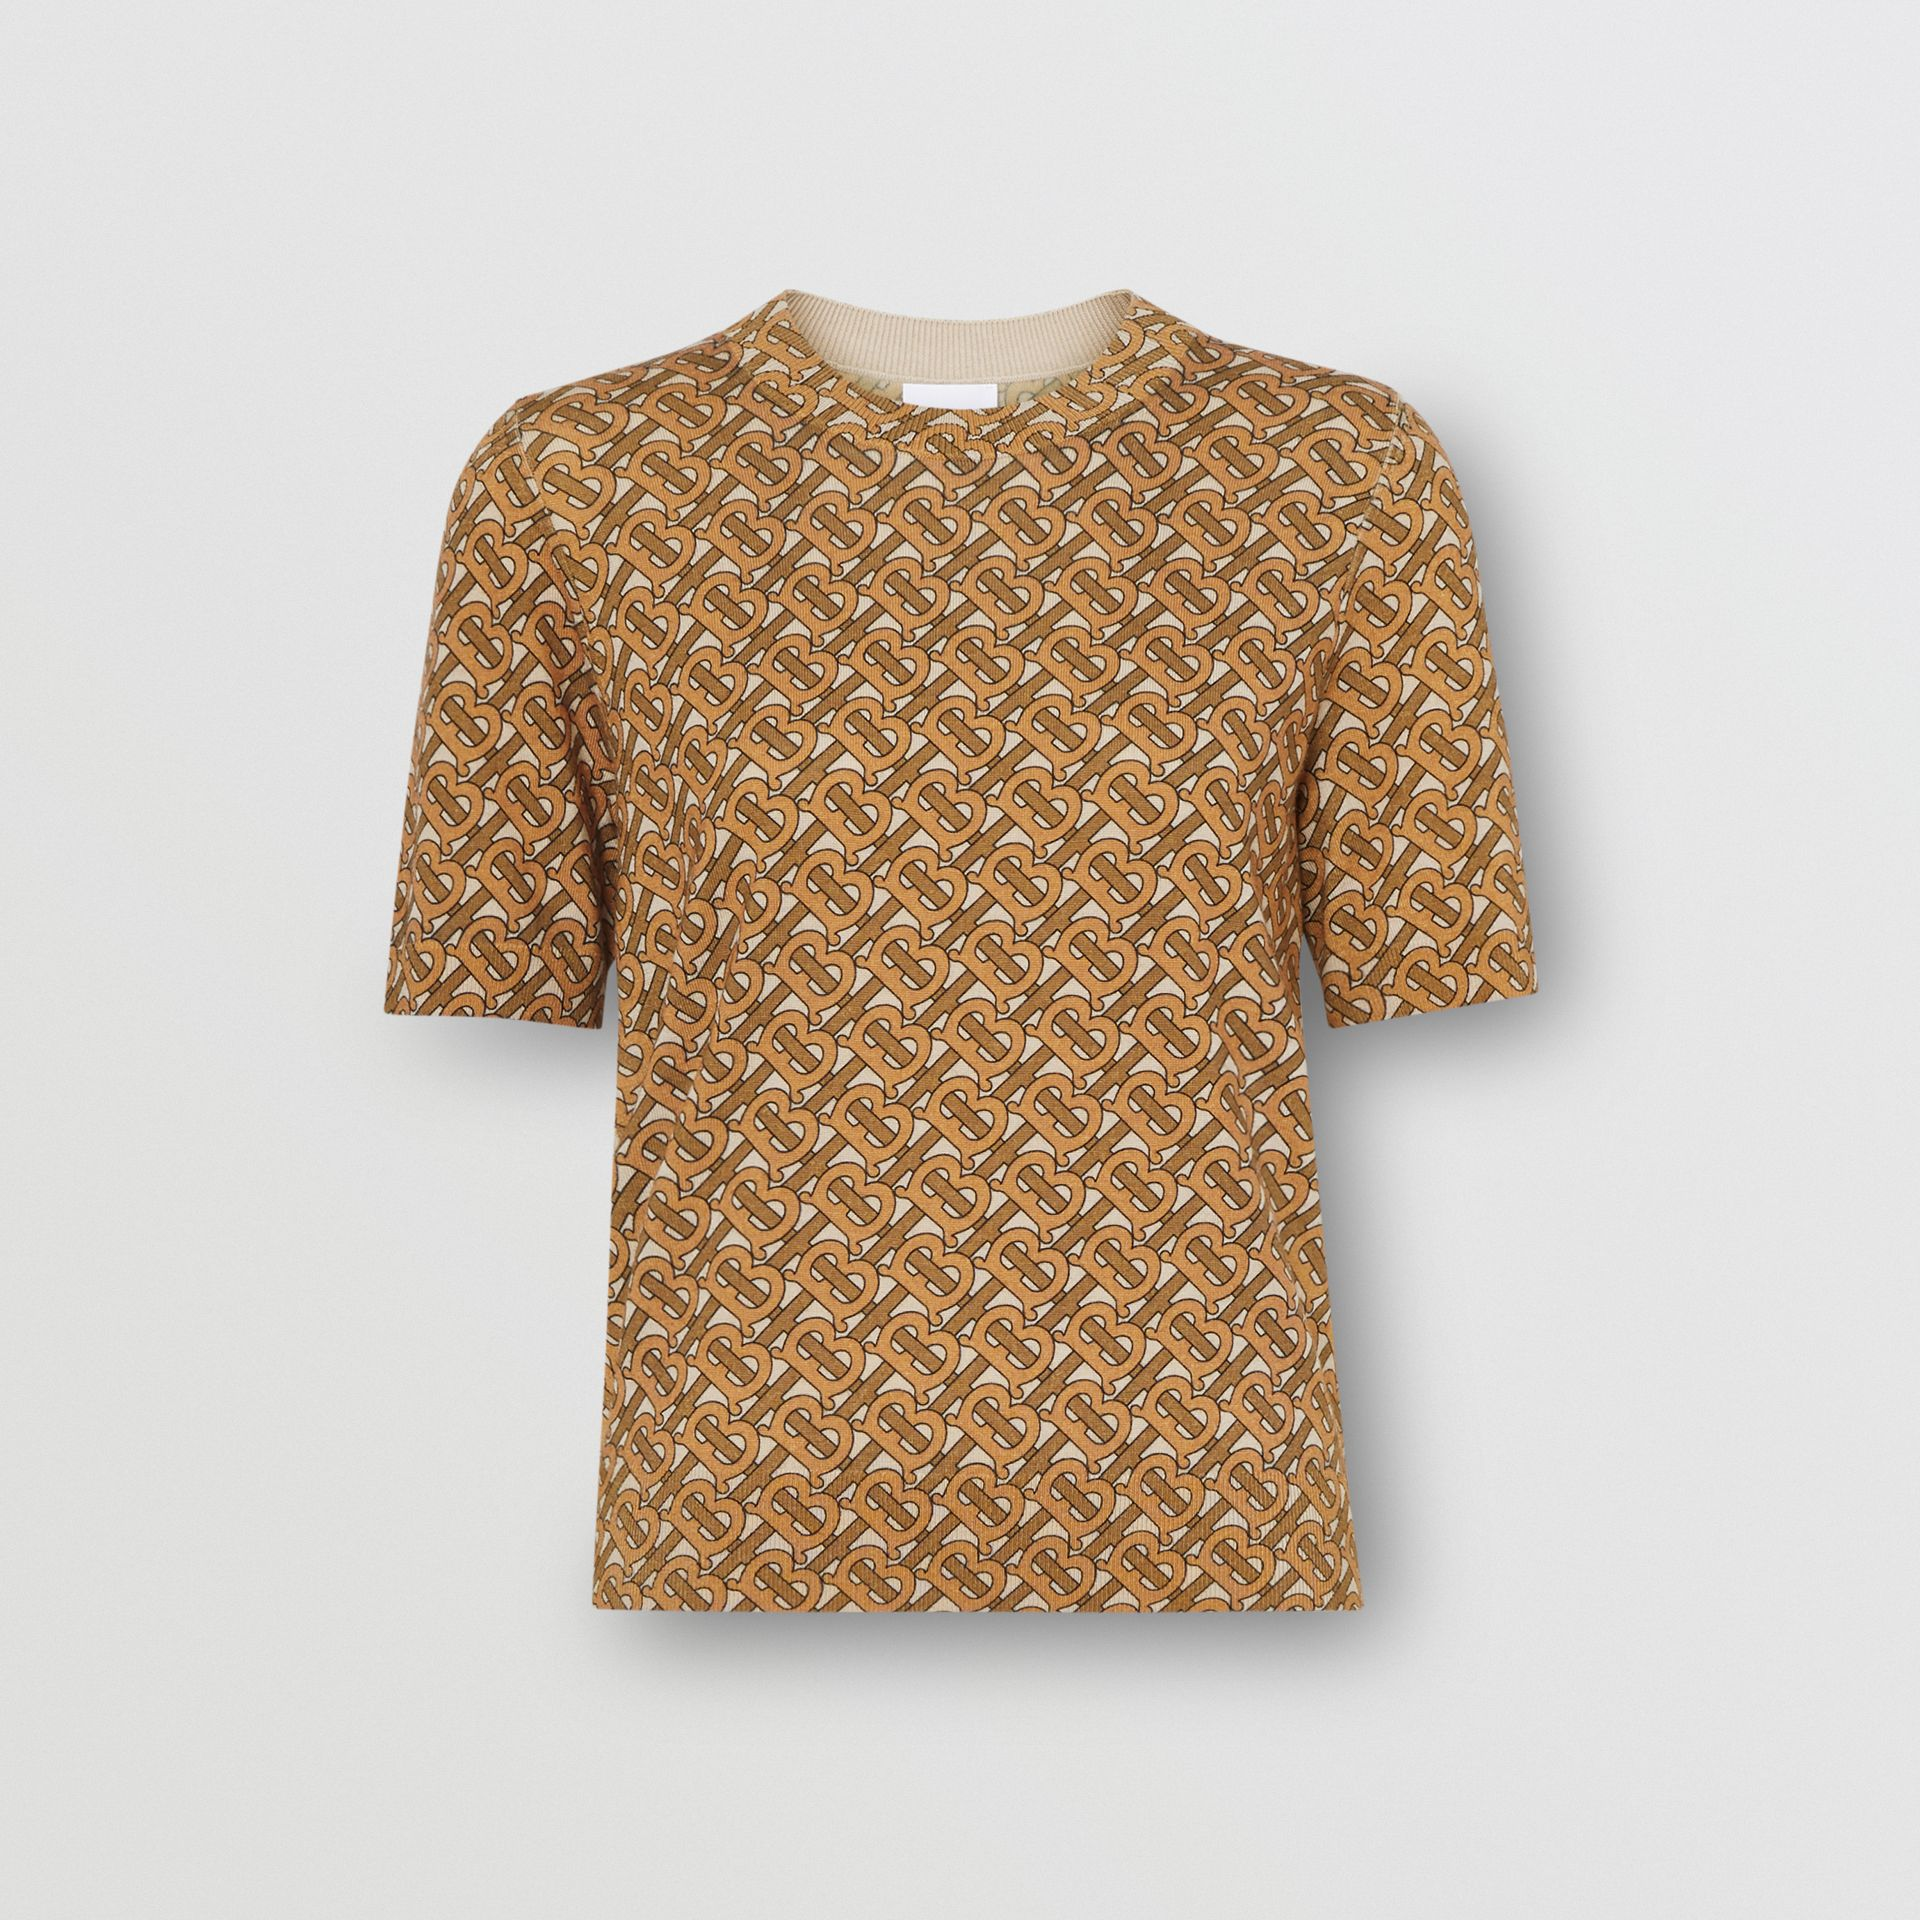 Monogram Print Merino Wool Top in Beige - Women | Burberry United Kingdom - gallery image 3